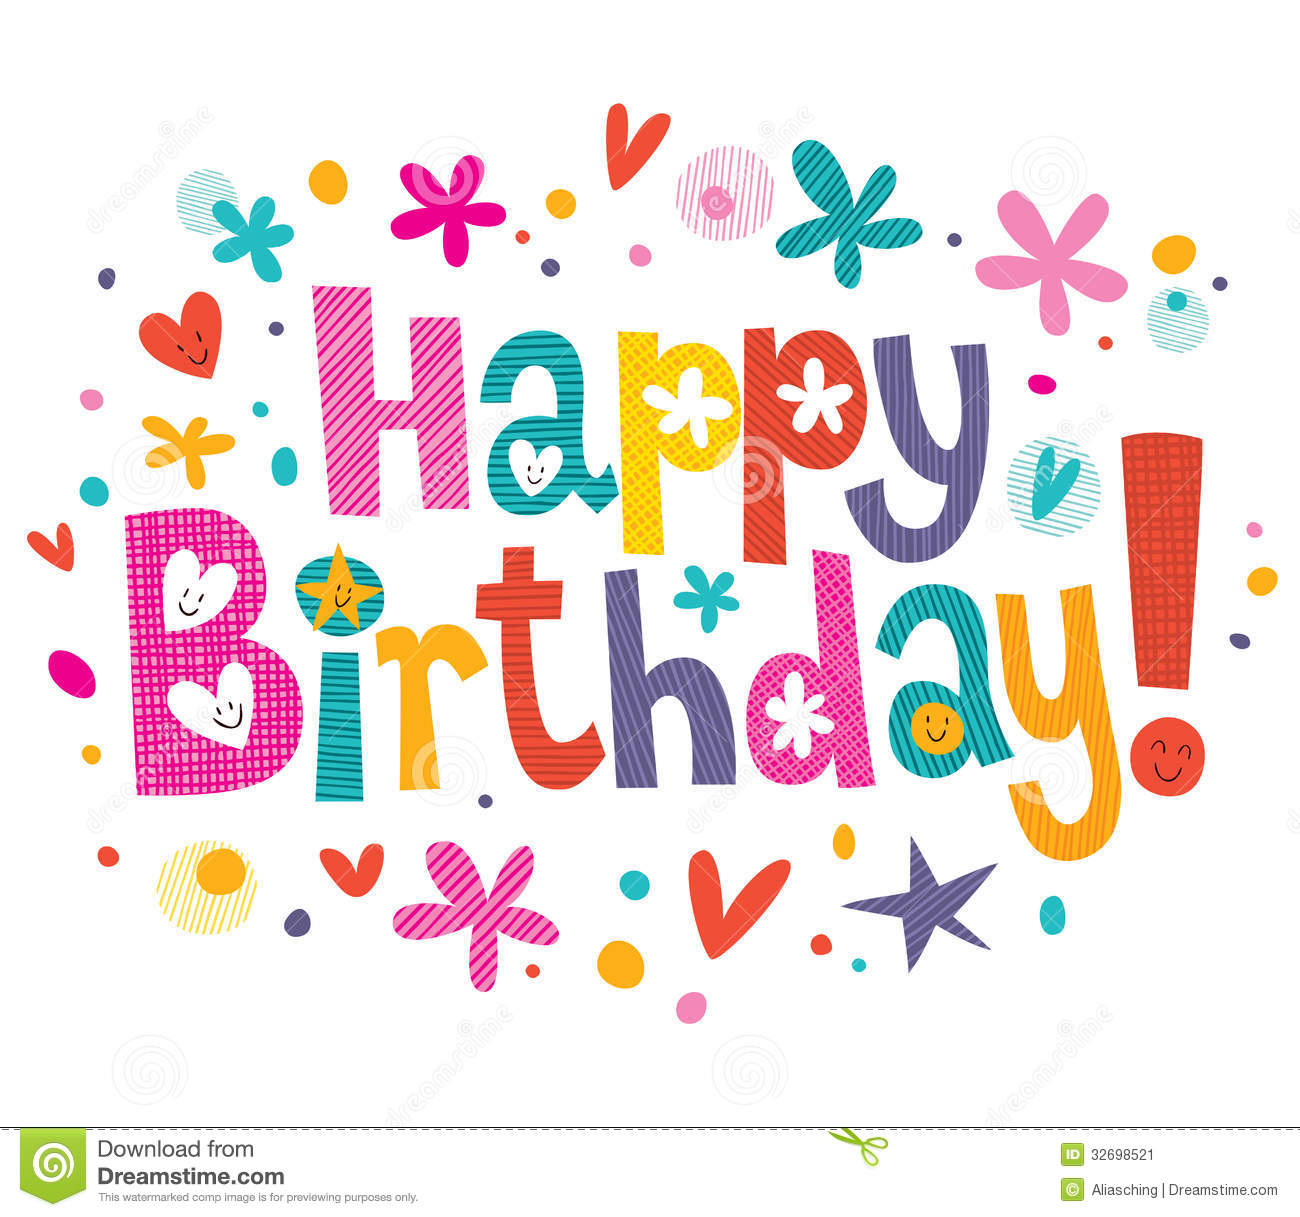 free birthday picture text messages ; happy-birthday-text-hand-drawn-artistic-32698521